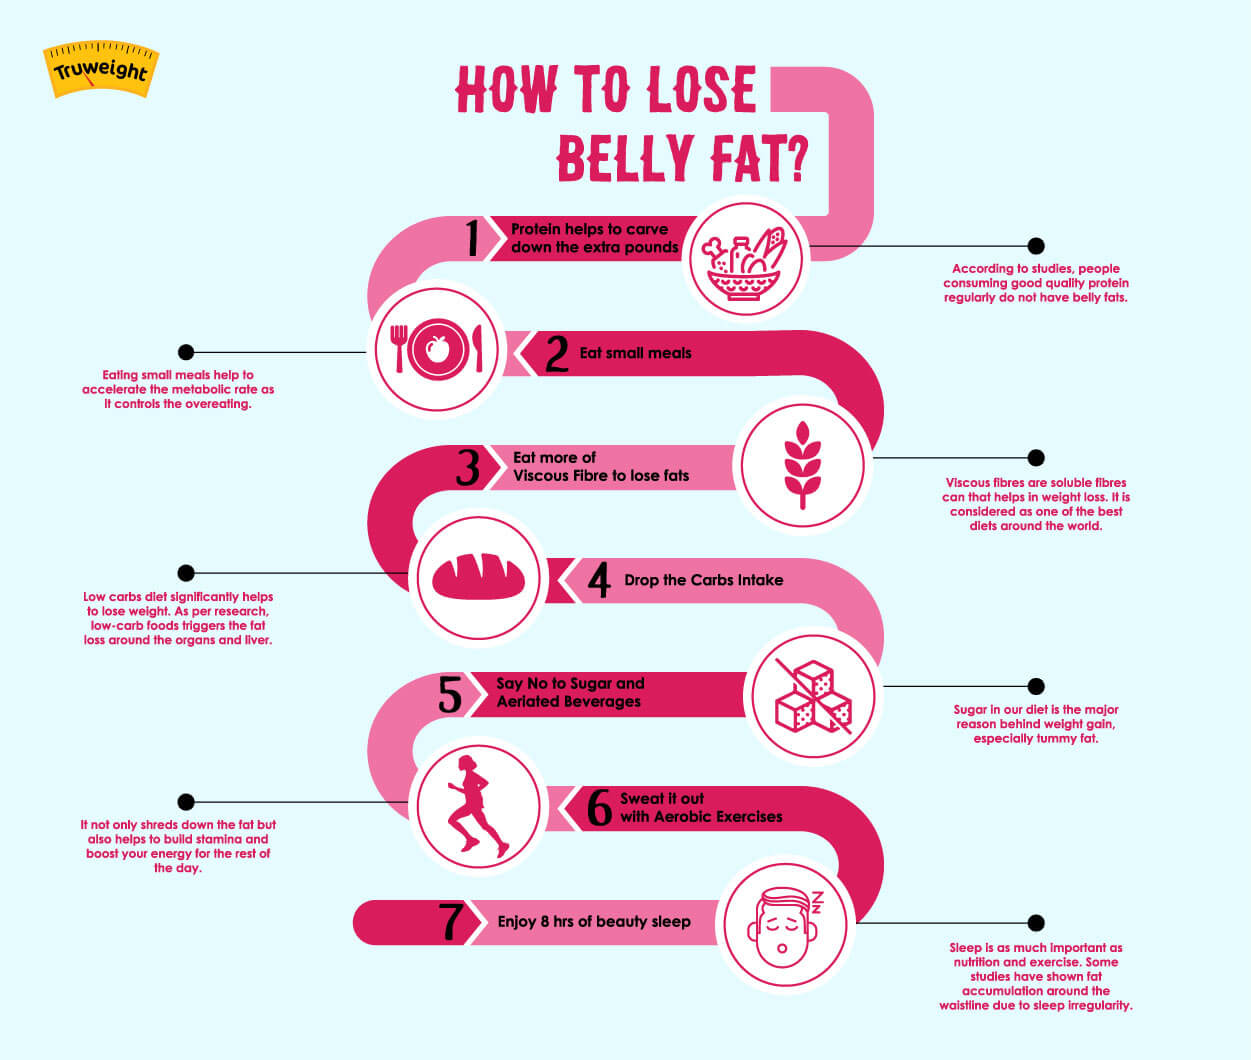 Lose Belly Fat: Simple Tricks & Tips Men, Women | Truweight